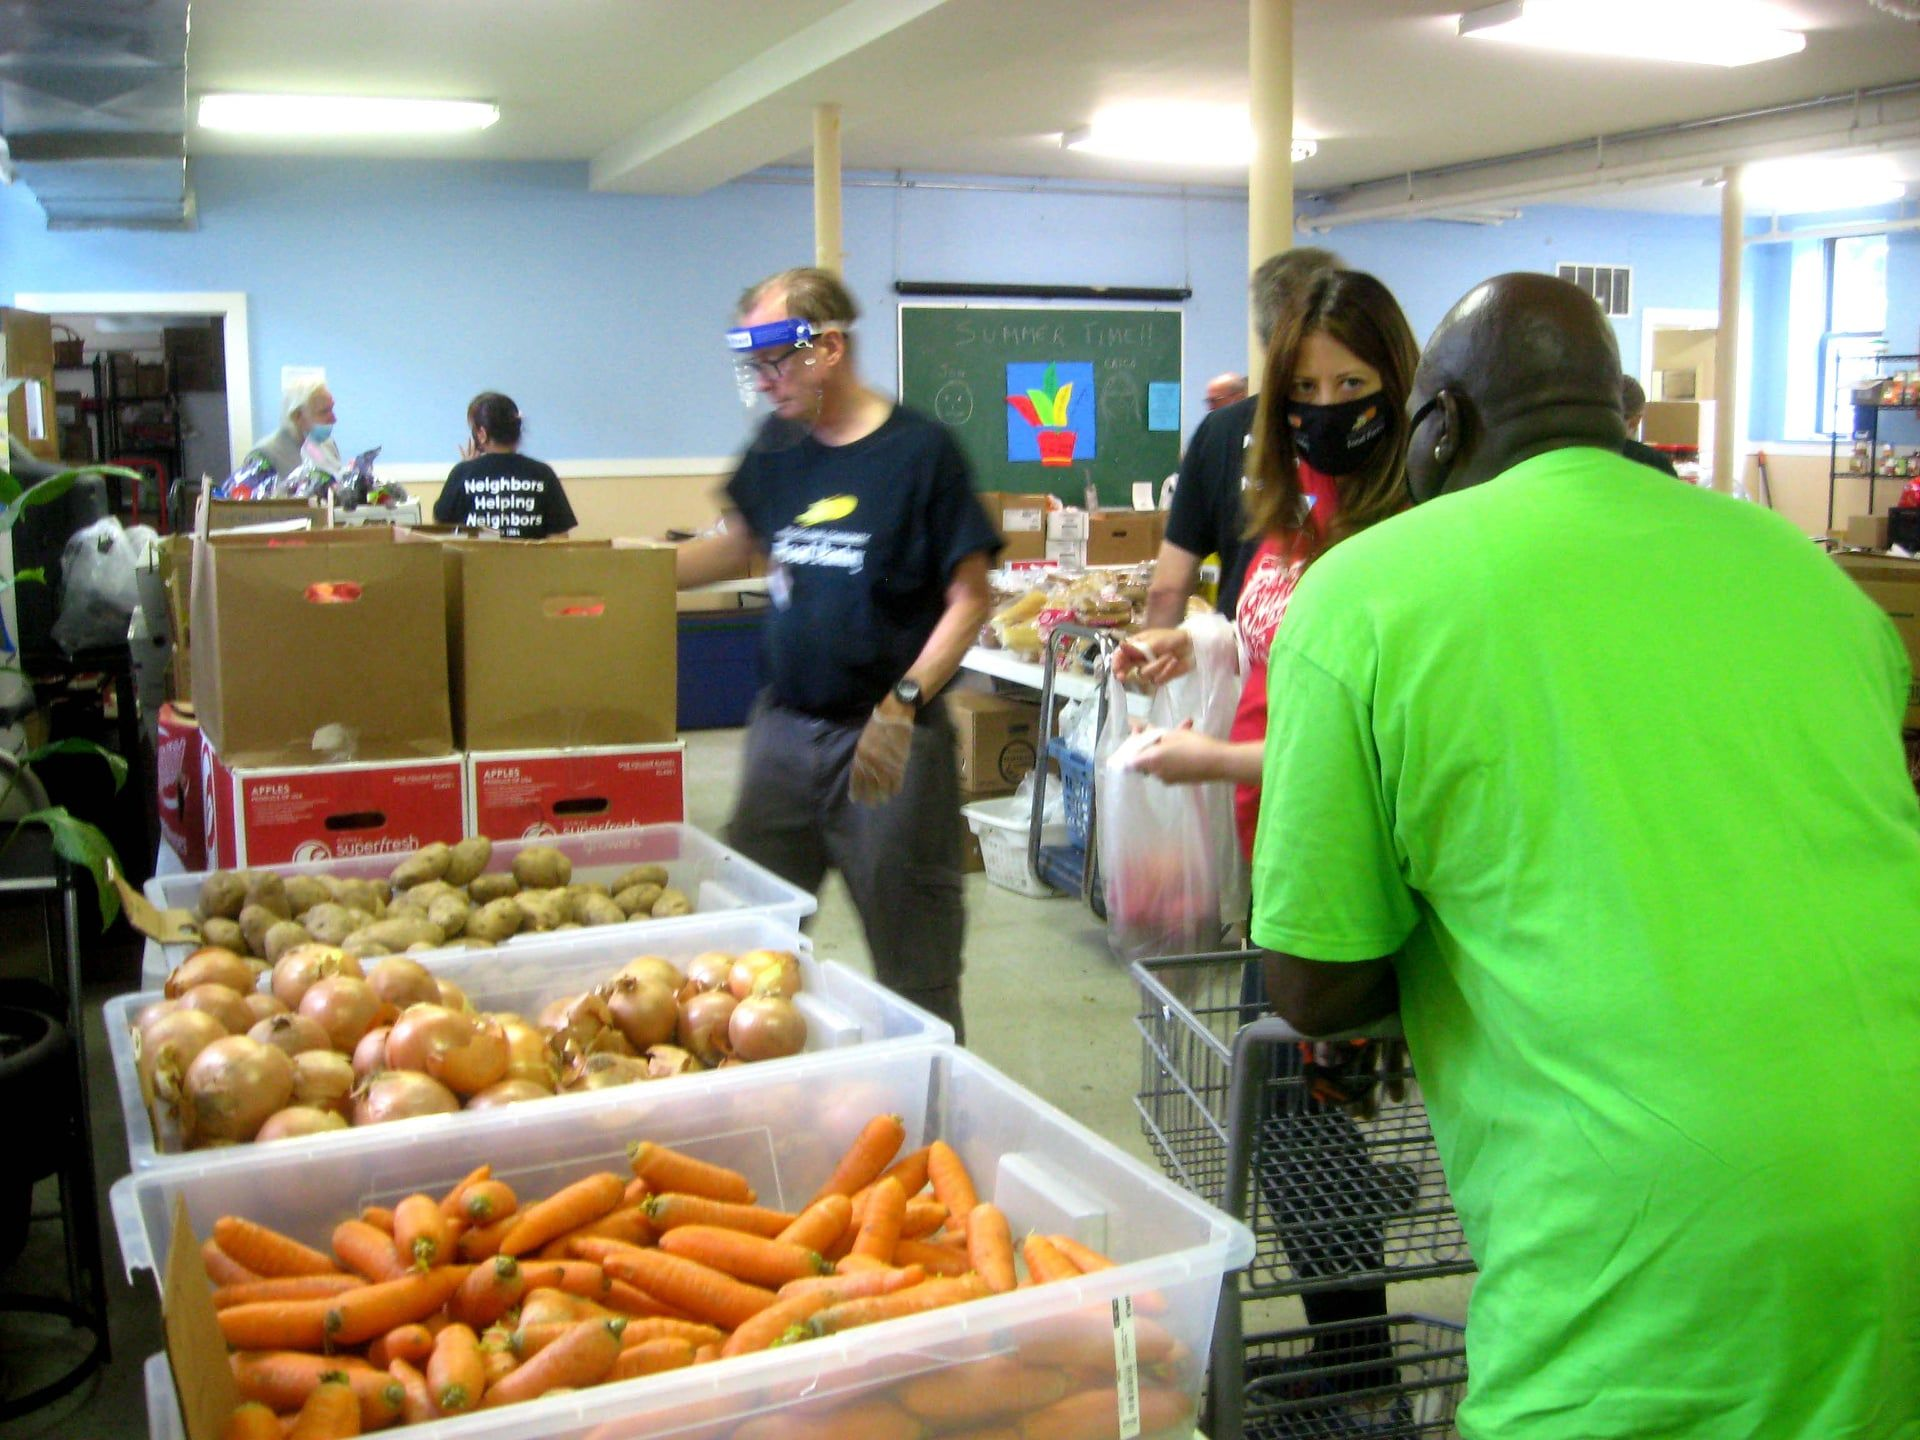 The Irving Park Community Food Pantry